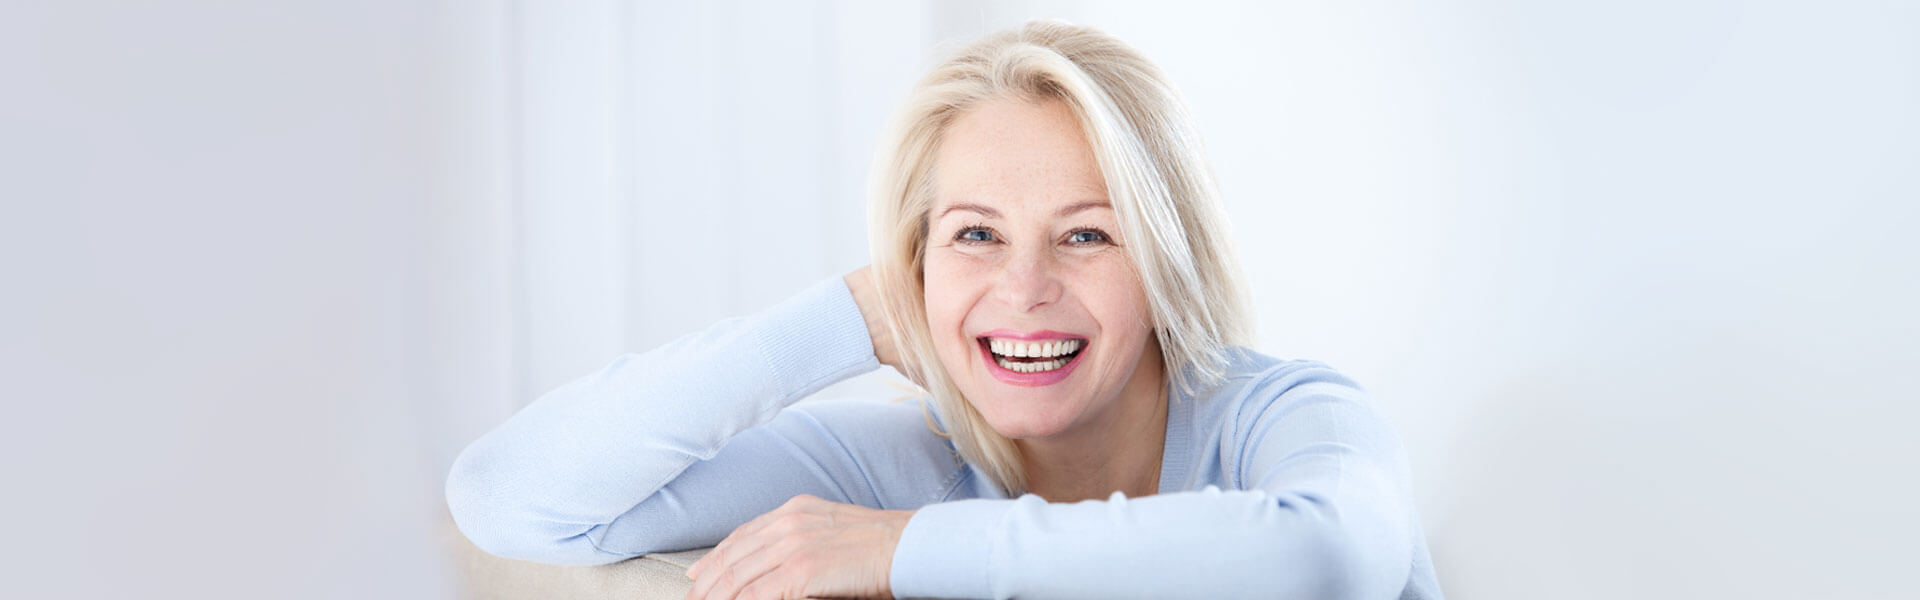 5 Reasons To Try All-On-4 Dental Implants